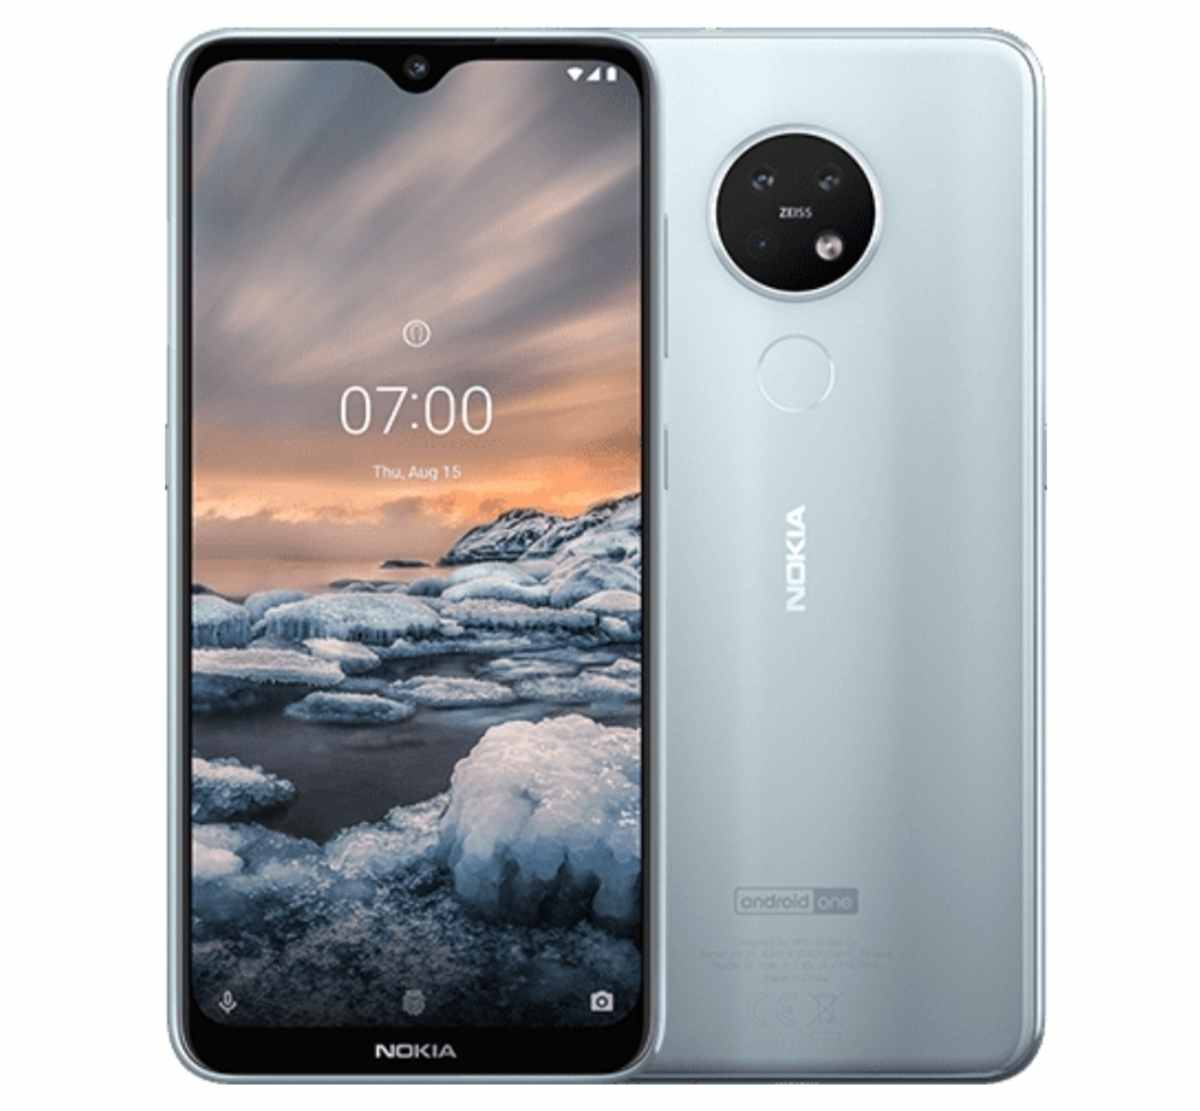 Nokia 7.2 Price, Nokia 7.2 price in Nigeria, Nokia 7.2, how much is the price of Nokia 7.2 in Nigeria, Price of Nokia 7.2 in Nigeria, Nigerian best price of Nokia 7.2, where to buy Nokia 7.2 in Nigeria, Nokia 7.2 specs, Nokia 7.2 specs and price in Nigeria